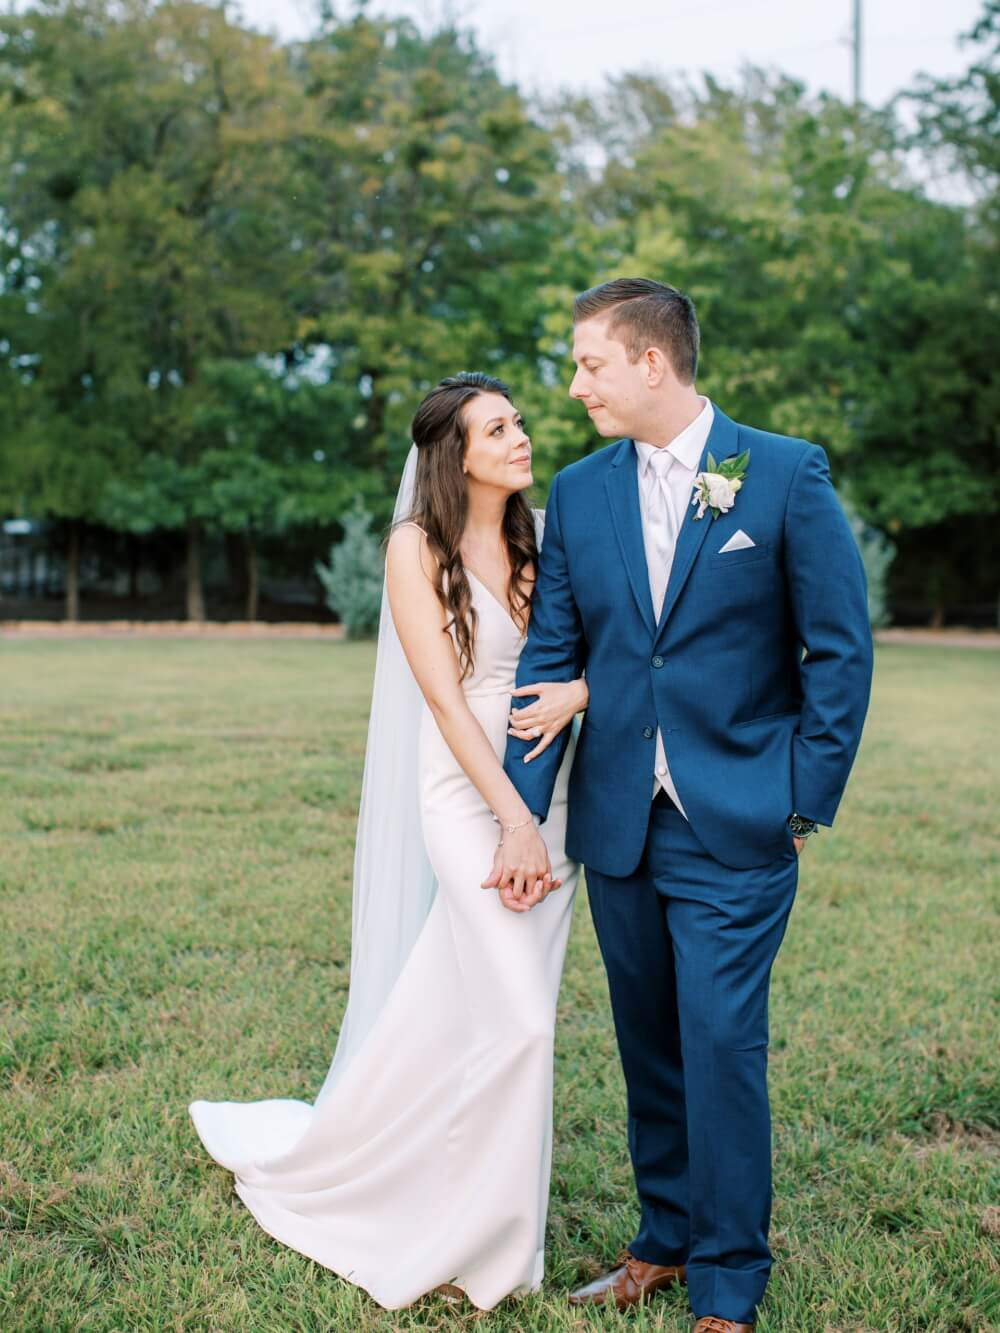 Becca Lea Photography, Dallas Wedding Photographer, Dallas Luxury Wedding, DFW Weddings, Grit & Gold Event Co DFW, Moss Floral, Something You DFW, Company N Films, Le Force DJ, Vestals Catering